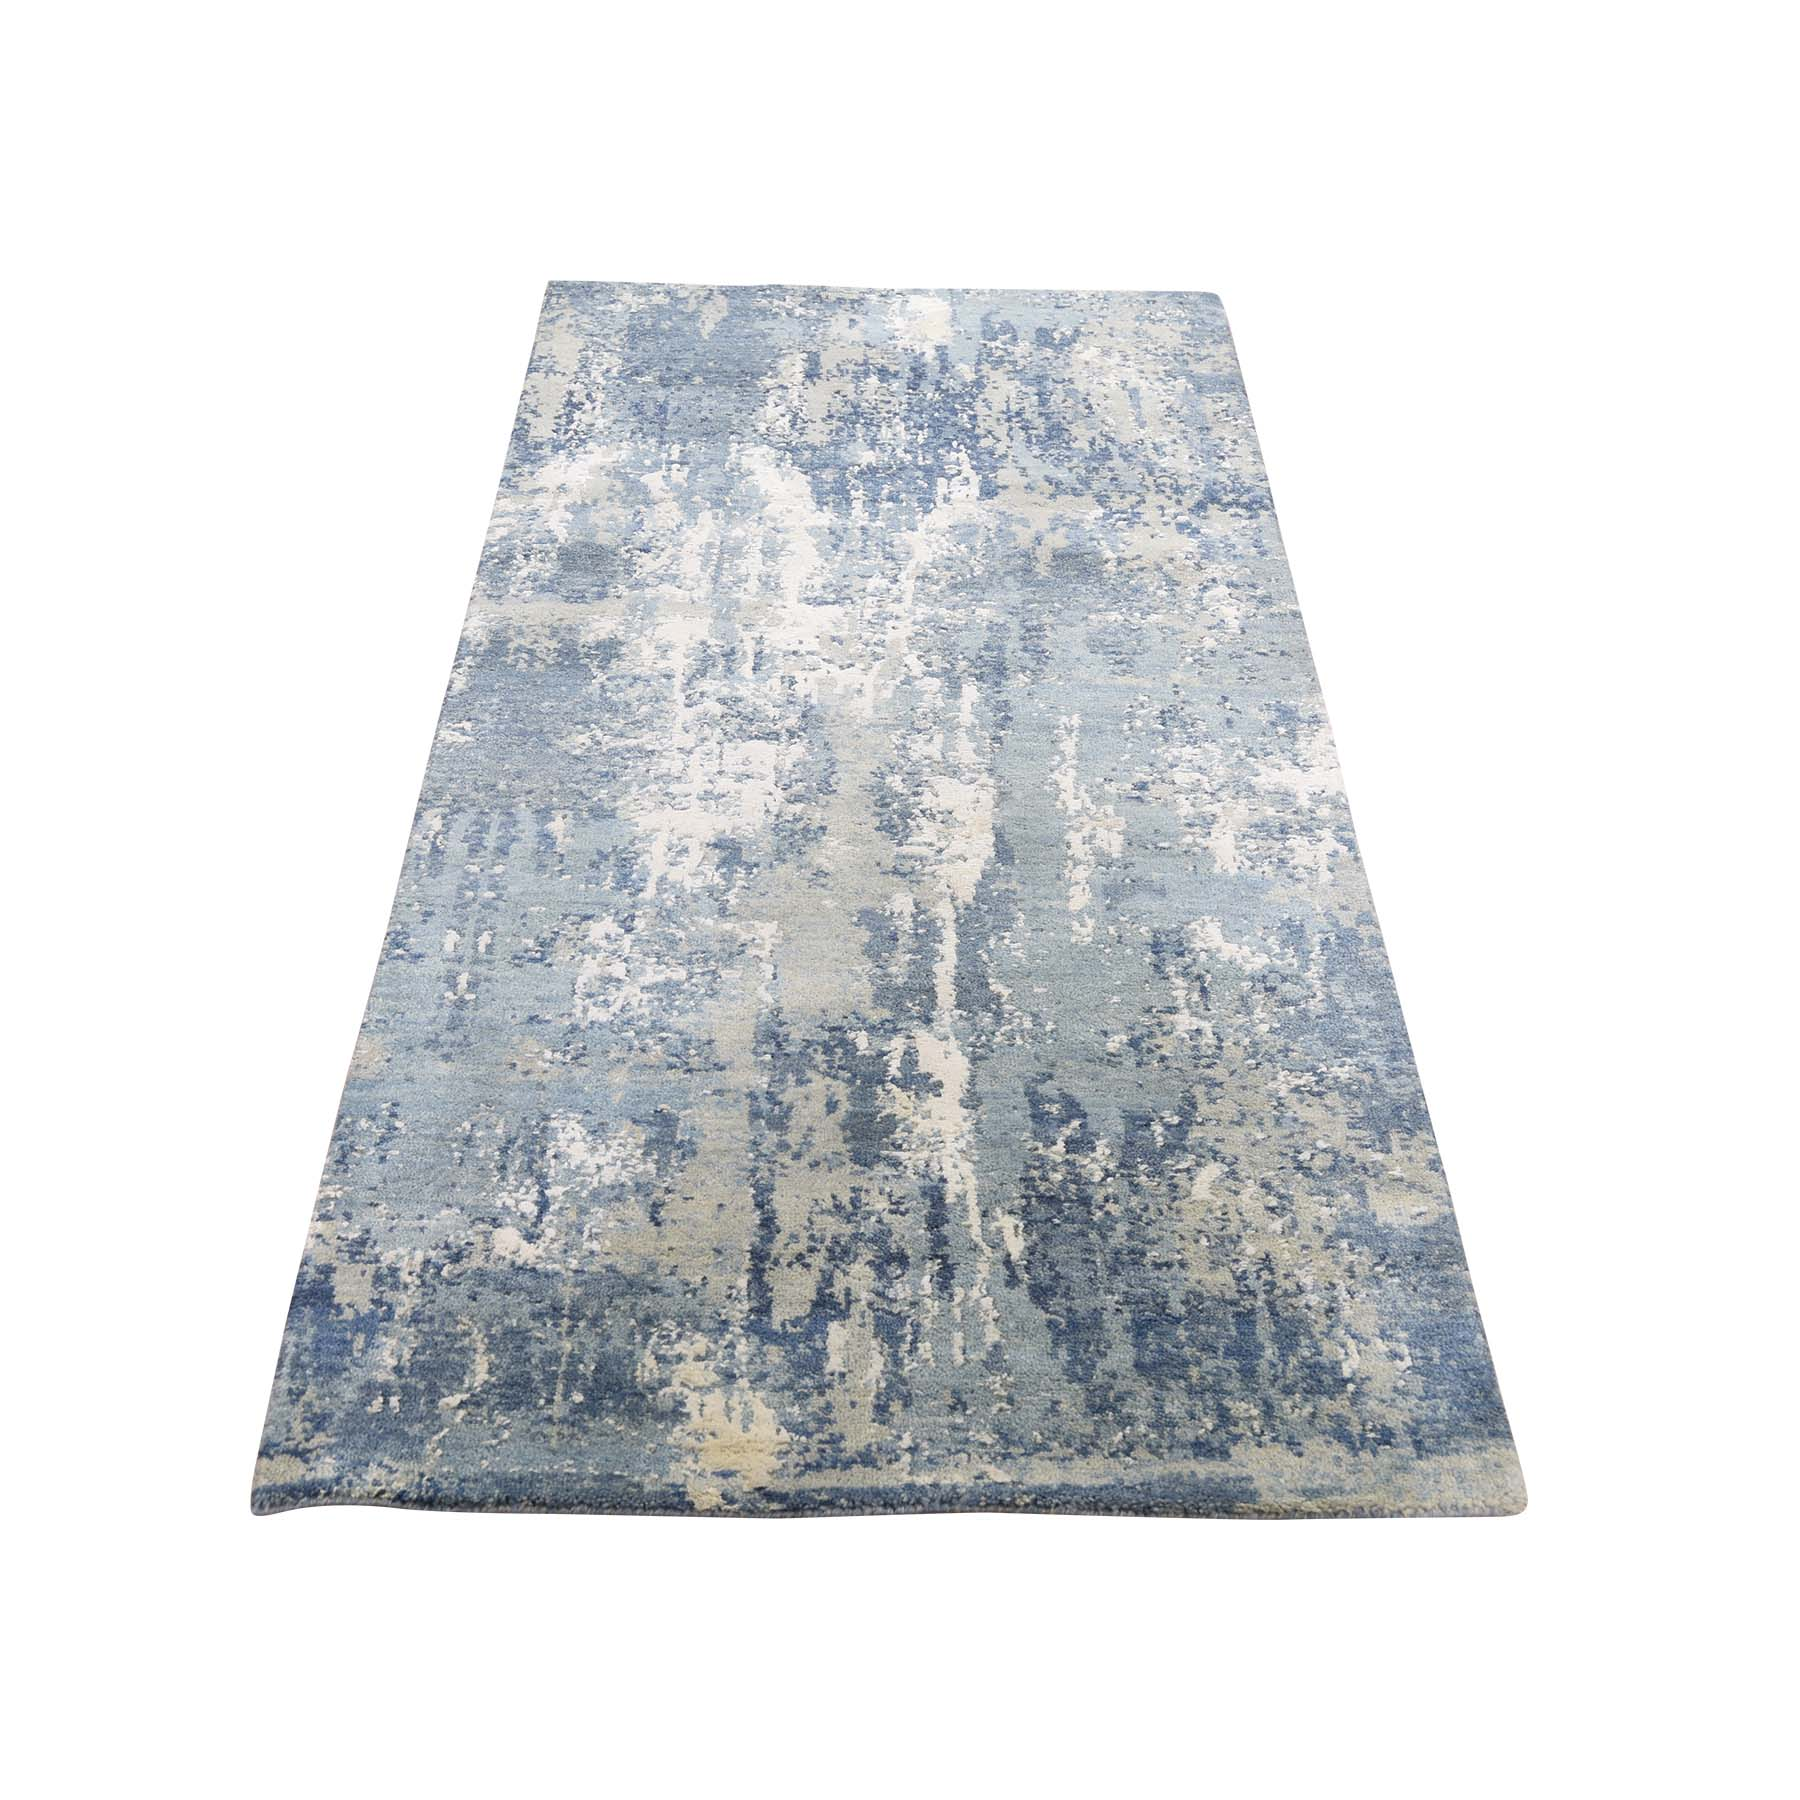 "2'7""x6'1"" Blue-Gray Abstract Design Wool and Pure Silk Hand-Knotted Oriental Runner Rug"